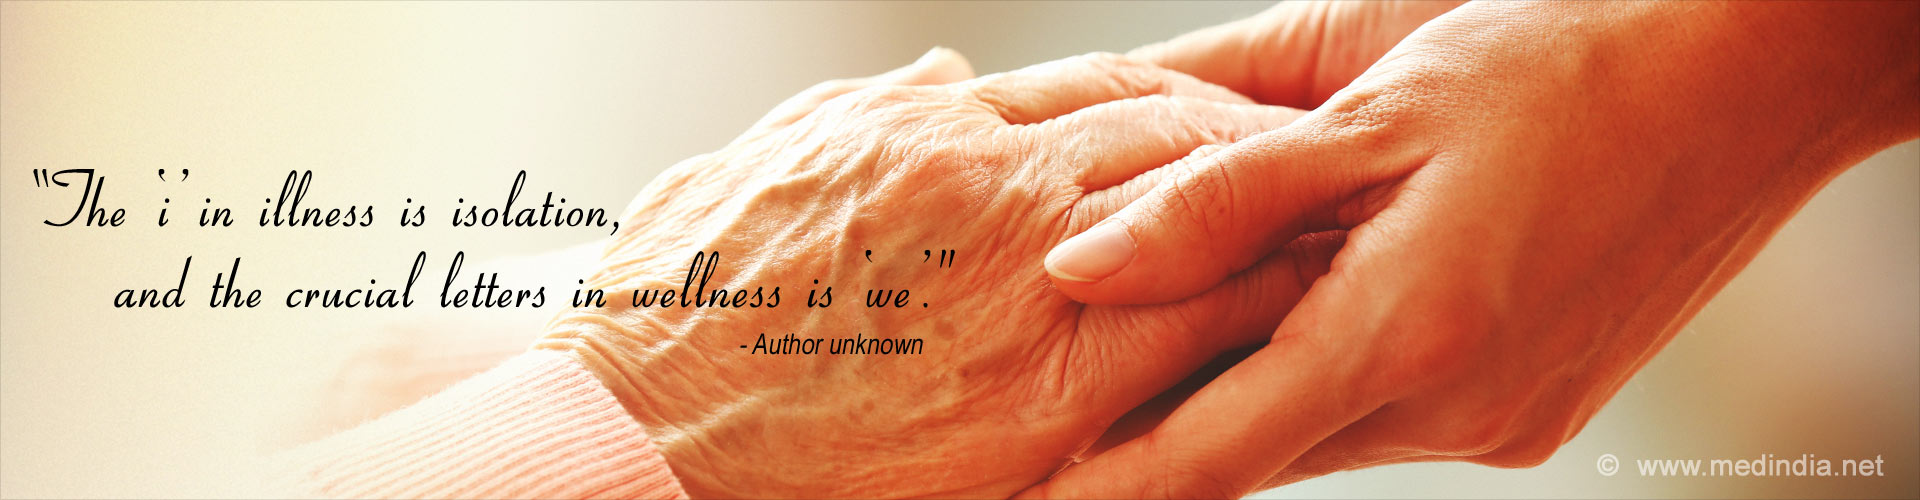 Caregivers - Care for them